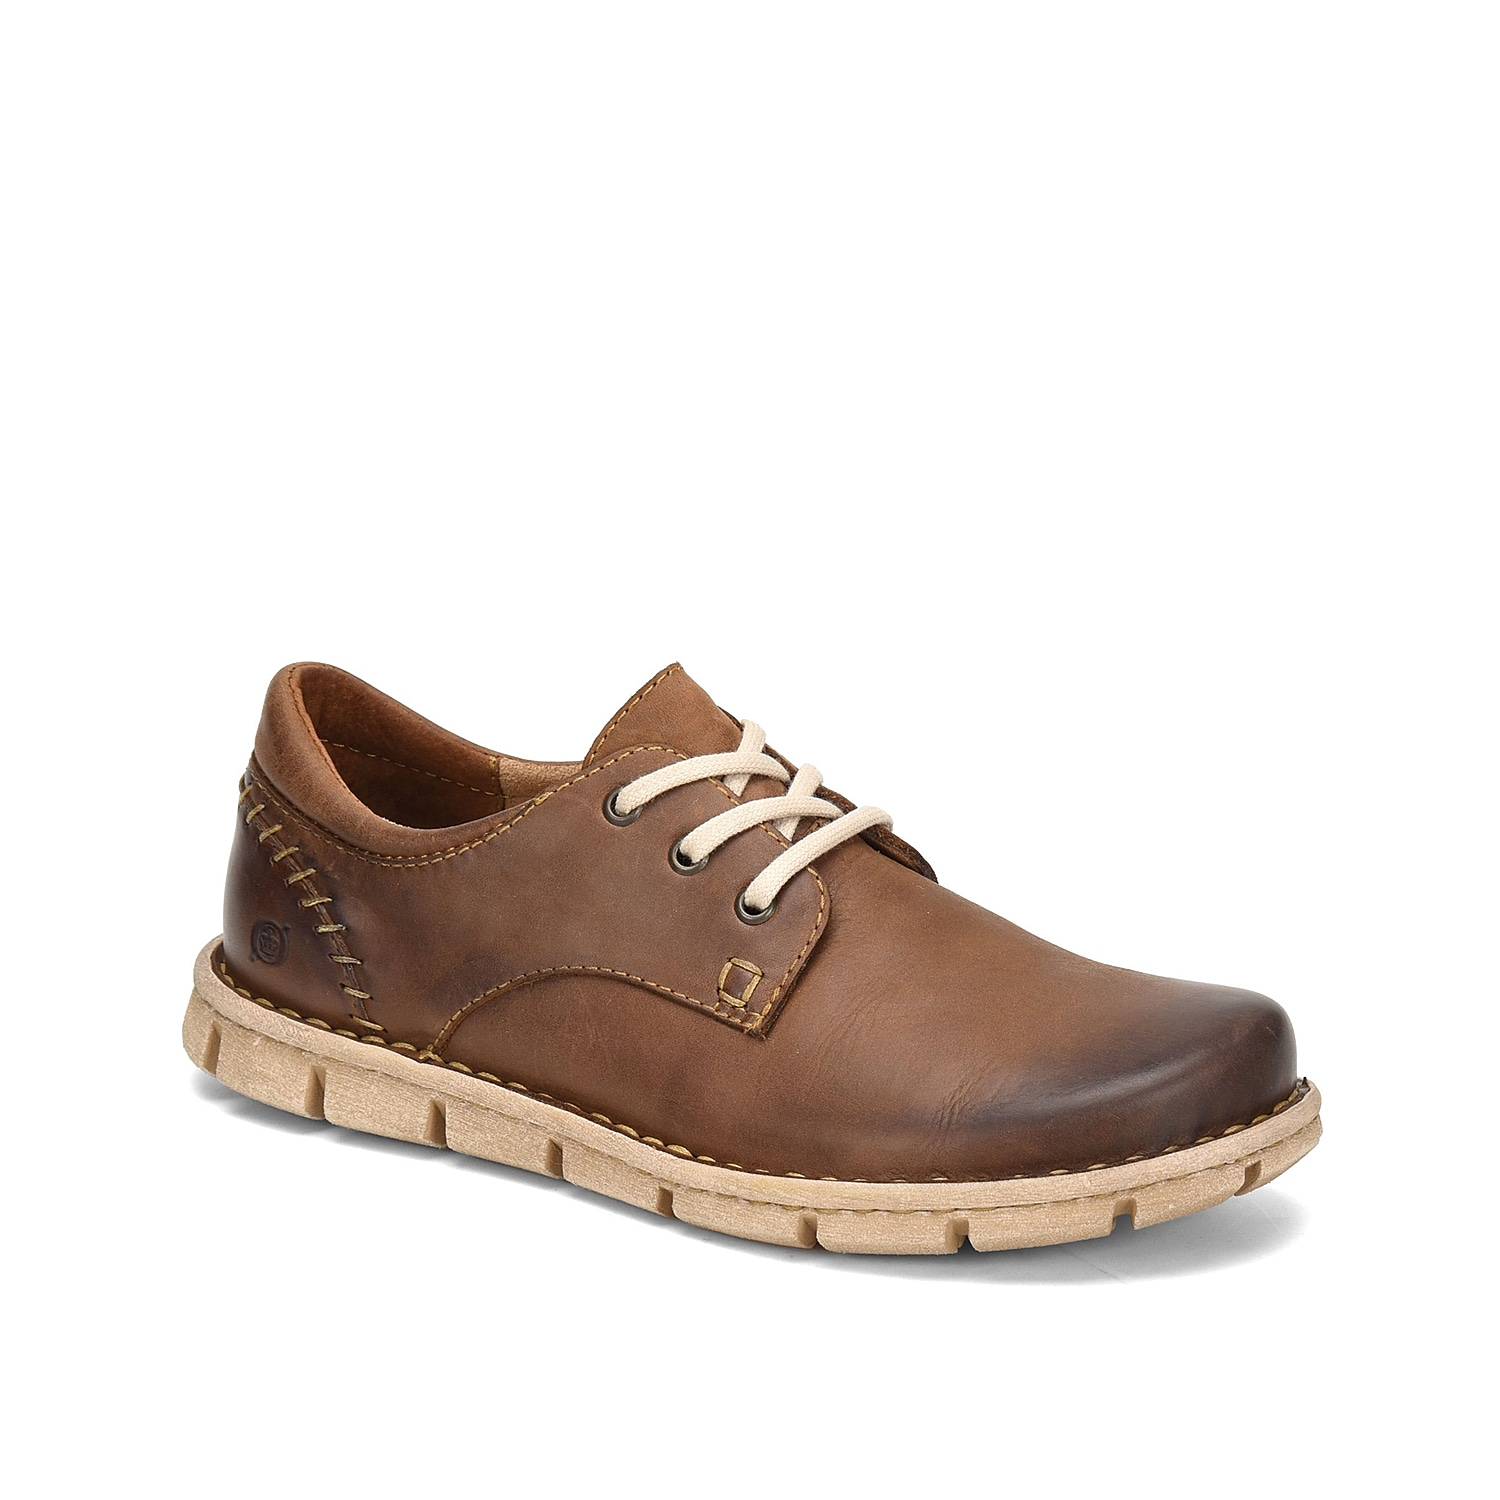 Crafted with a flexible outsole and cushioned footbed, the Berthold sneaker from Born propels you forward in comfort with a lightweight, stylish design.